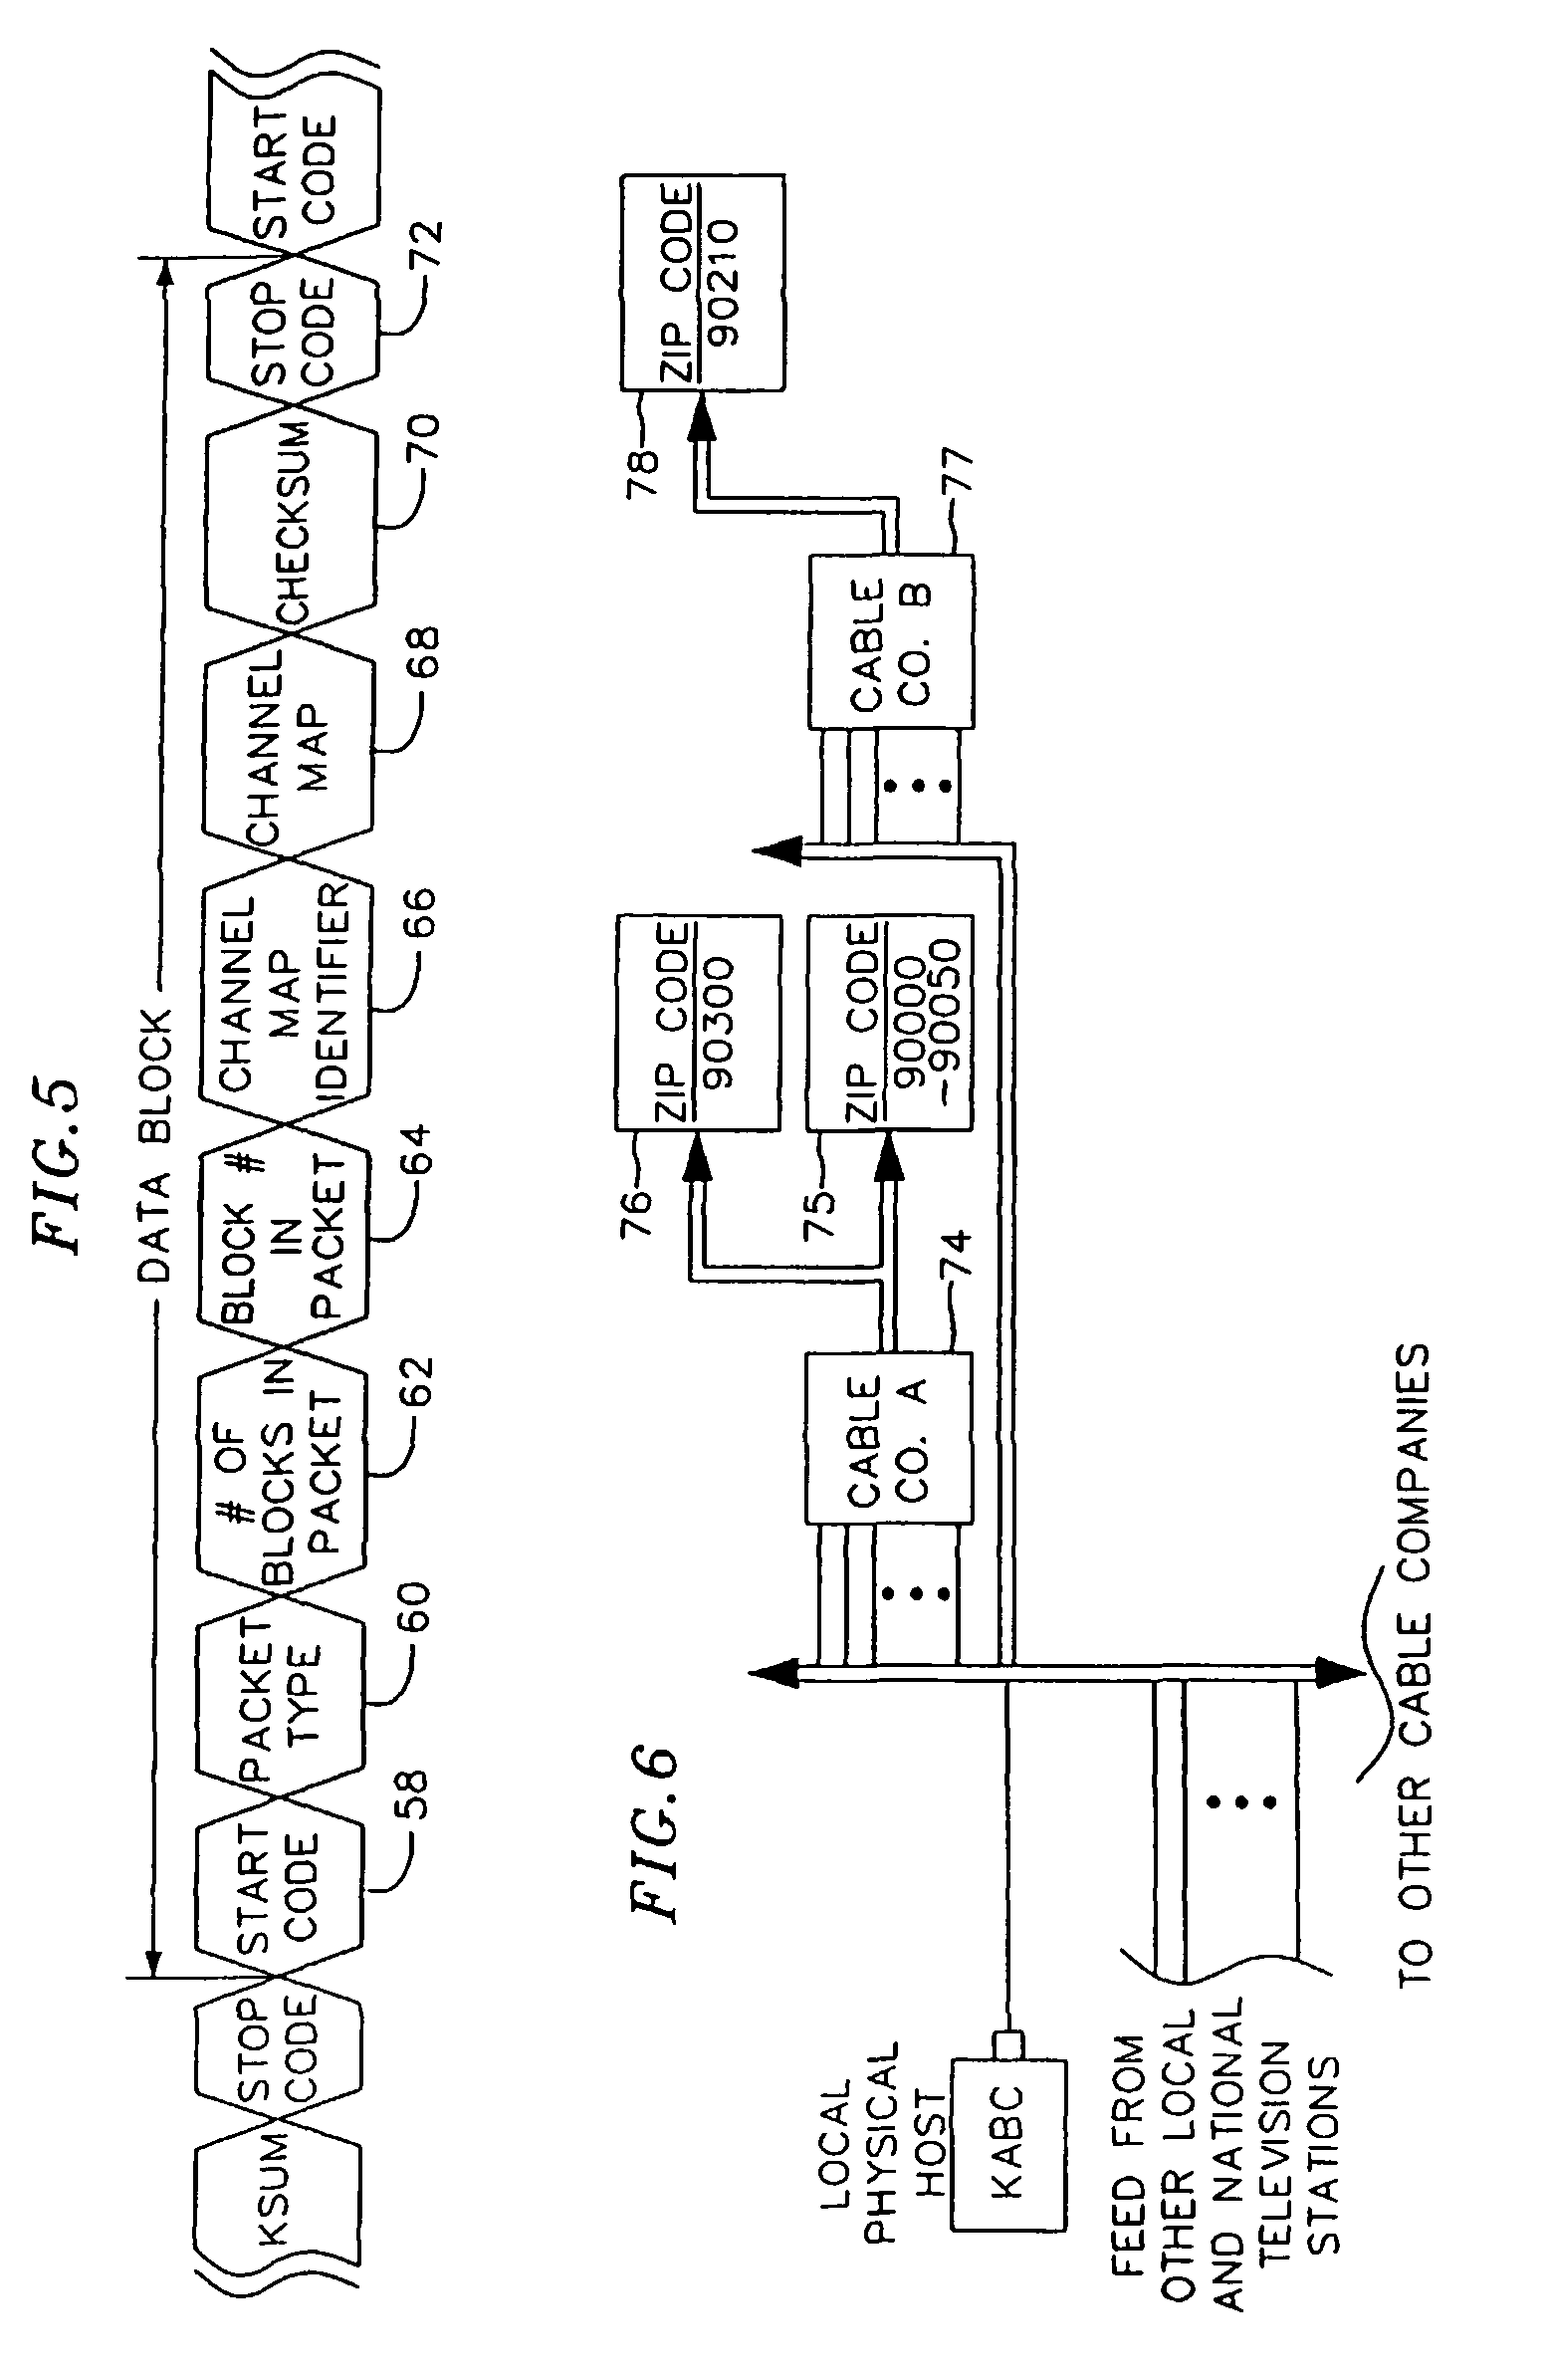 Patente US Method And Apparatus For Transmitting And - Us zip code type